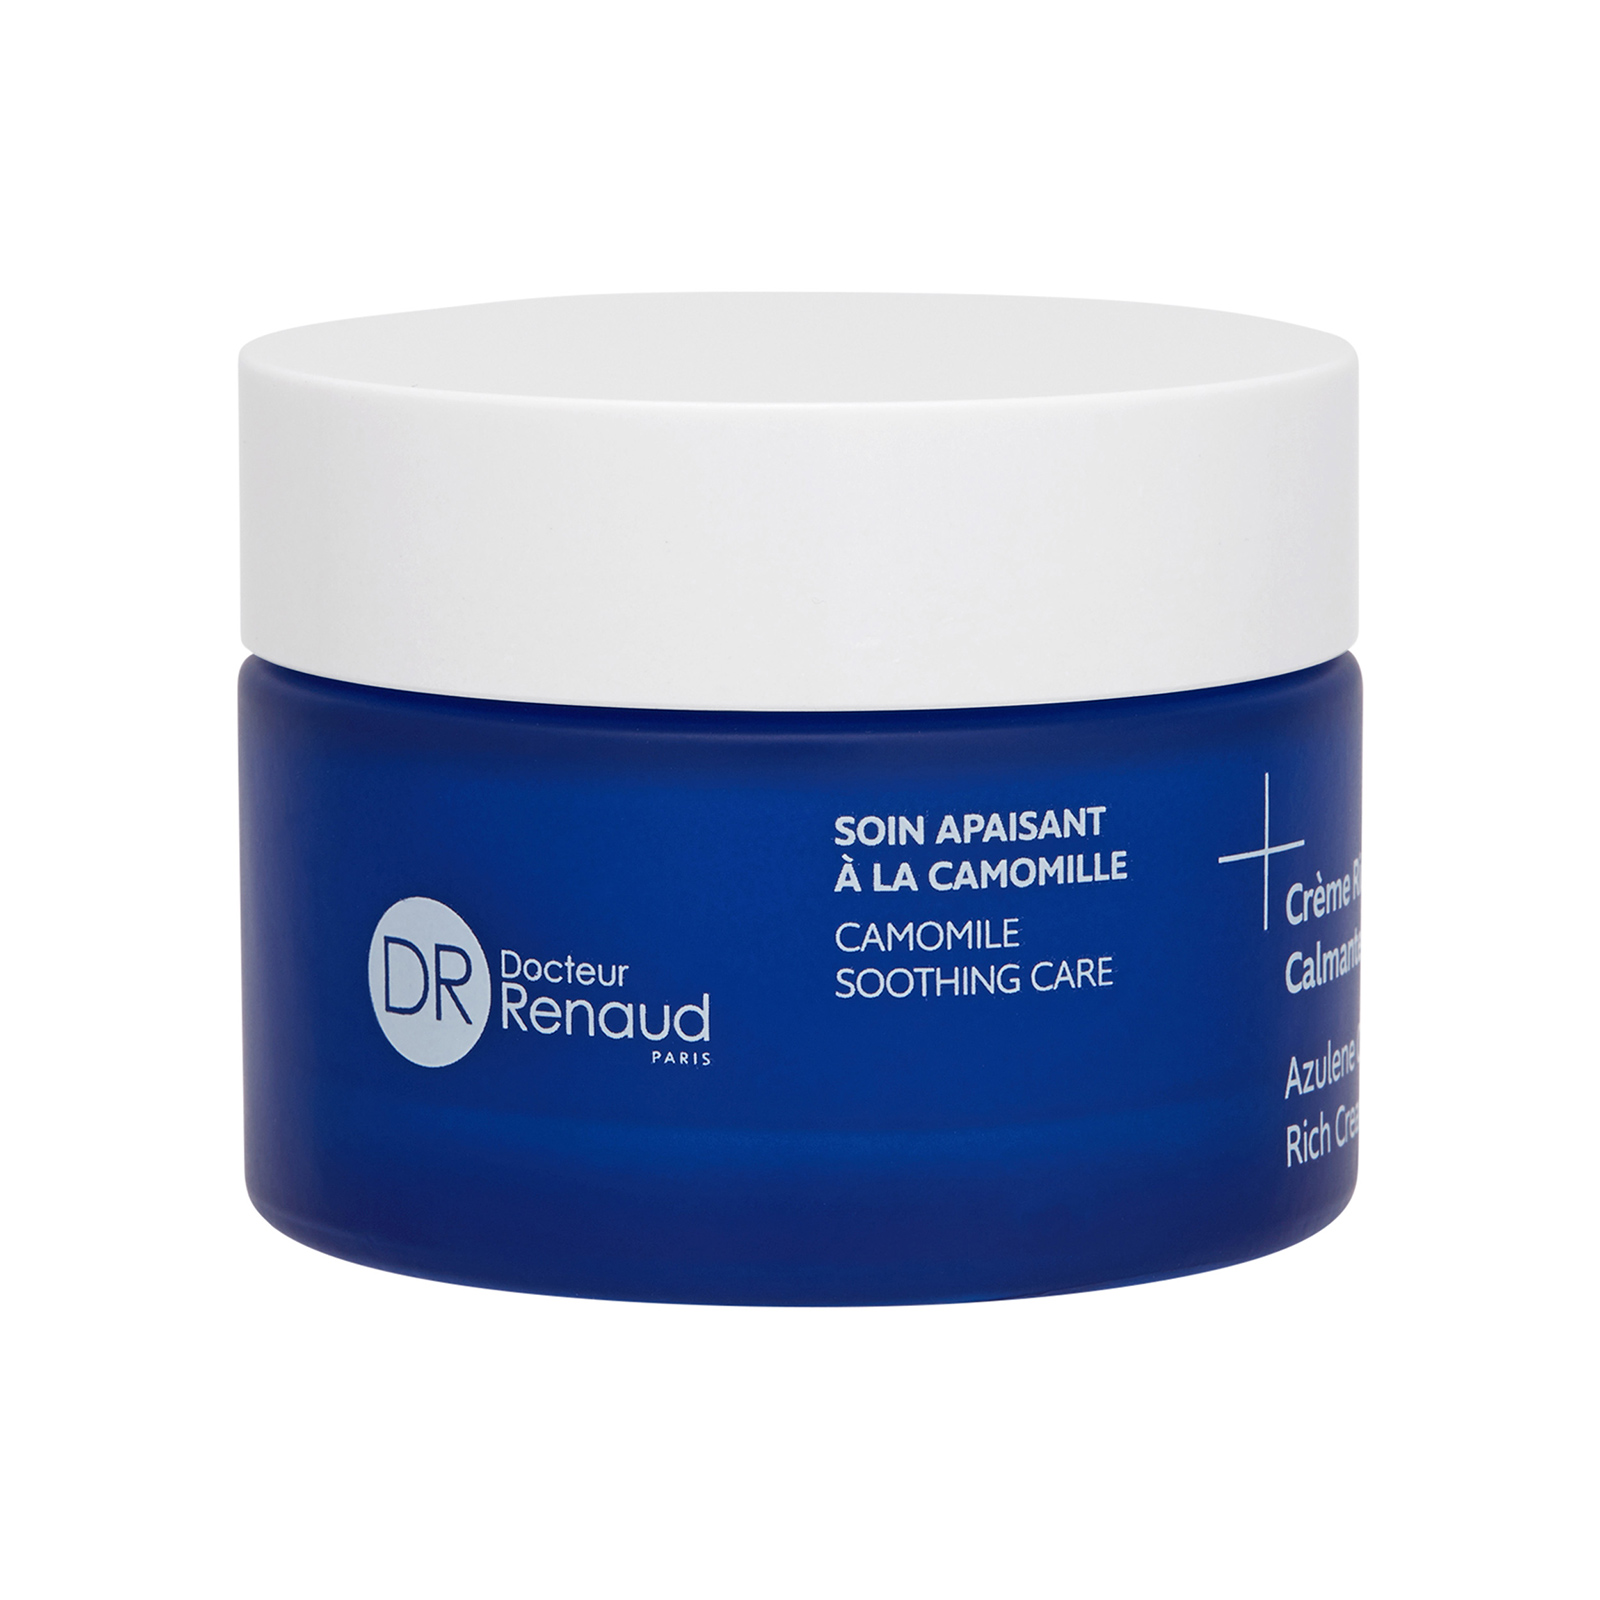 Docteur Renaud Soothing Care Azulene Calming Rich Cream 1.6oz, 50ml